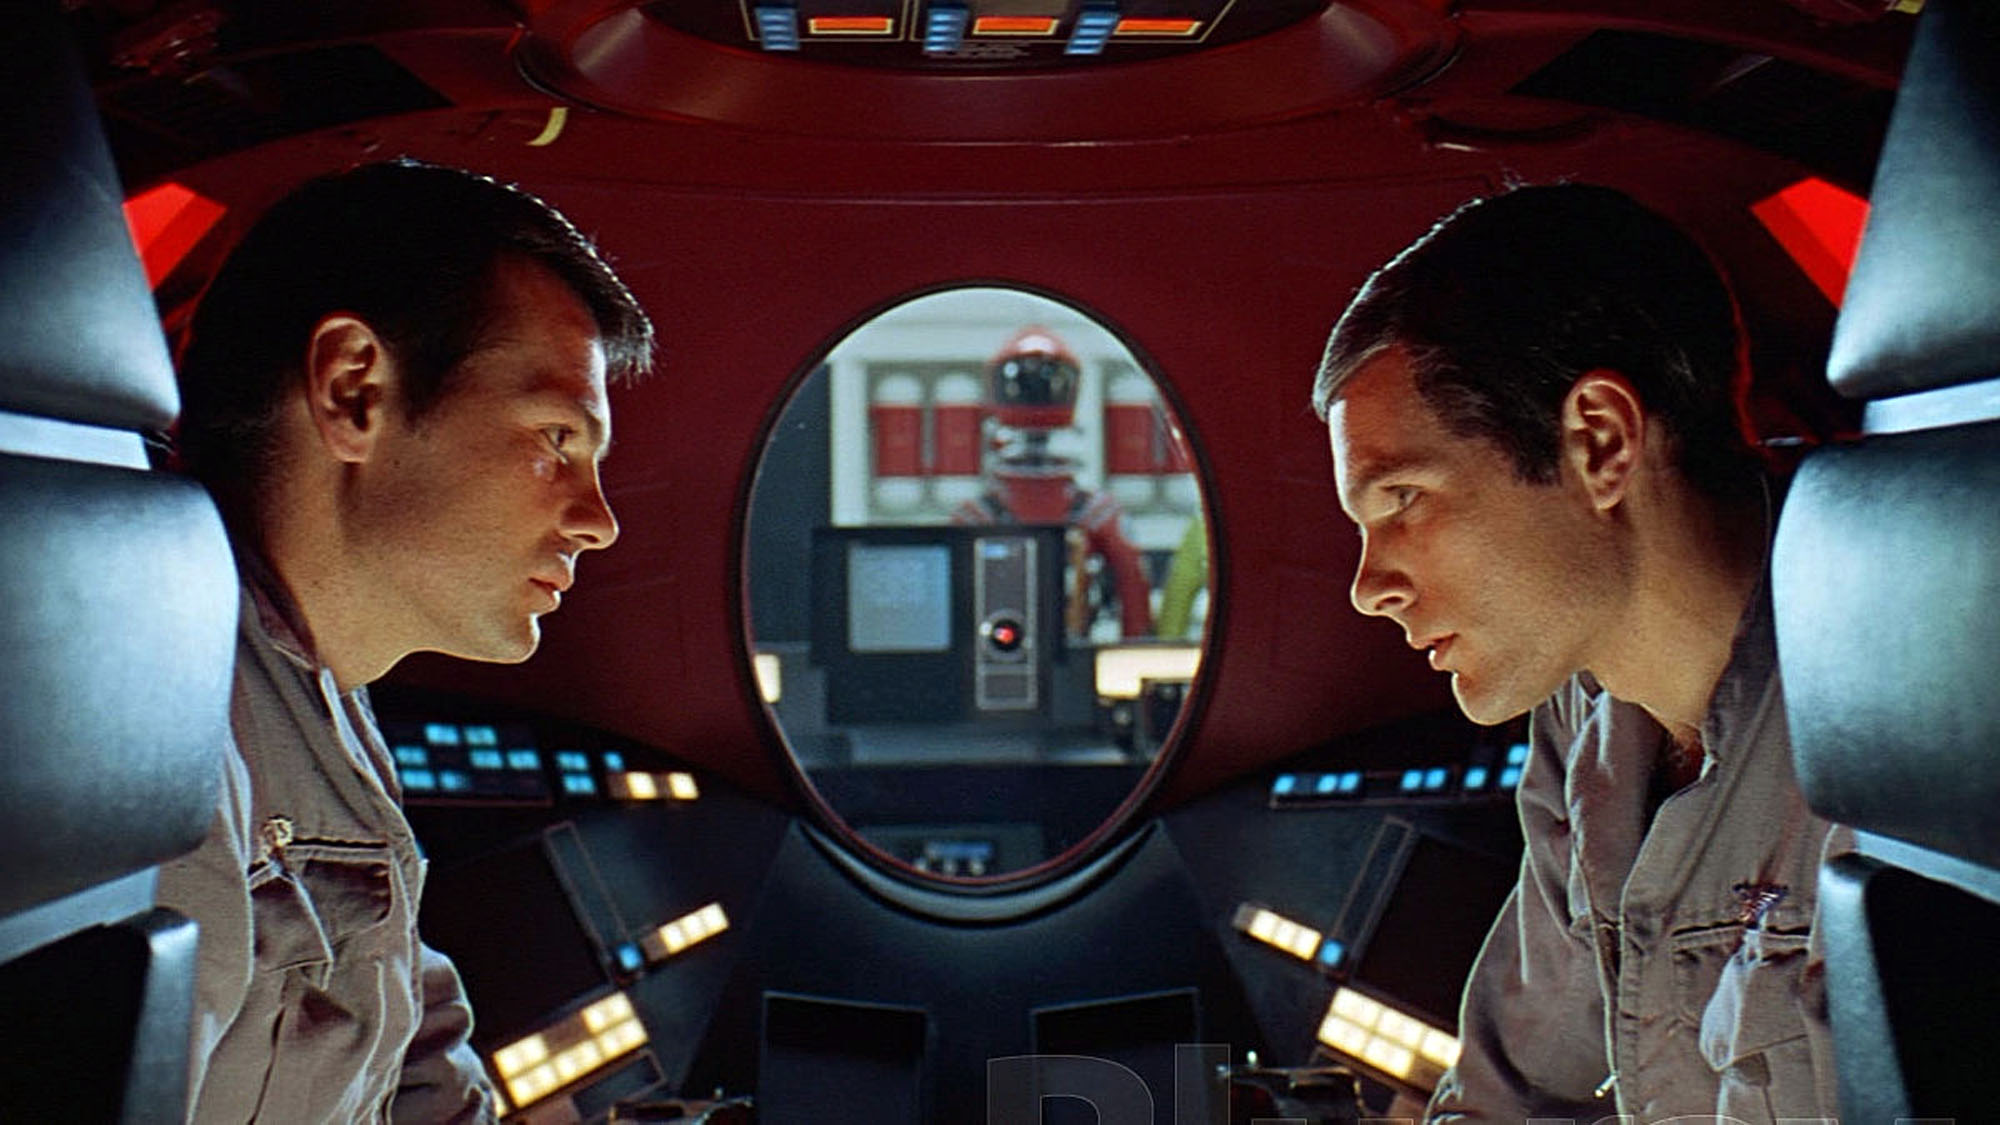 Crewmen Bowman and Poole in an EVA pod talking without HAL-9000 hearing them